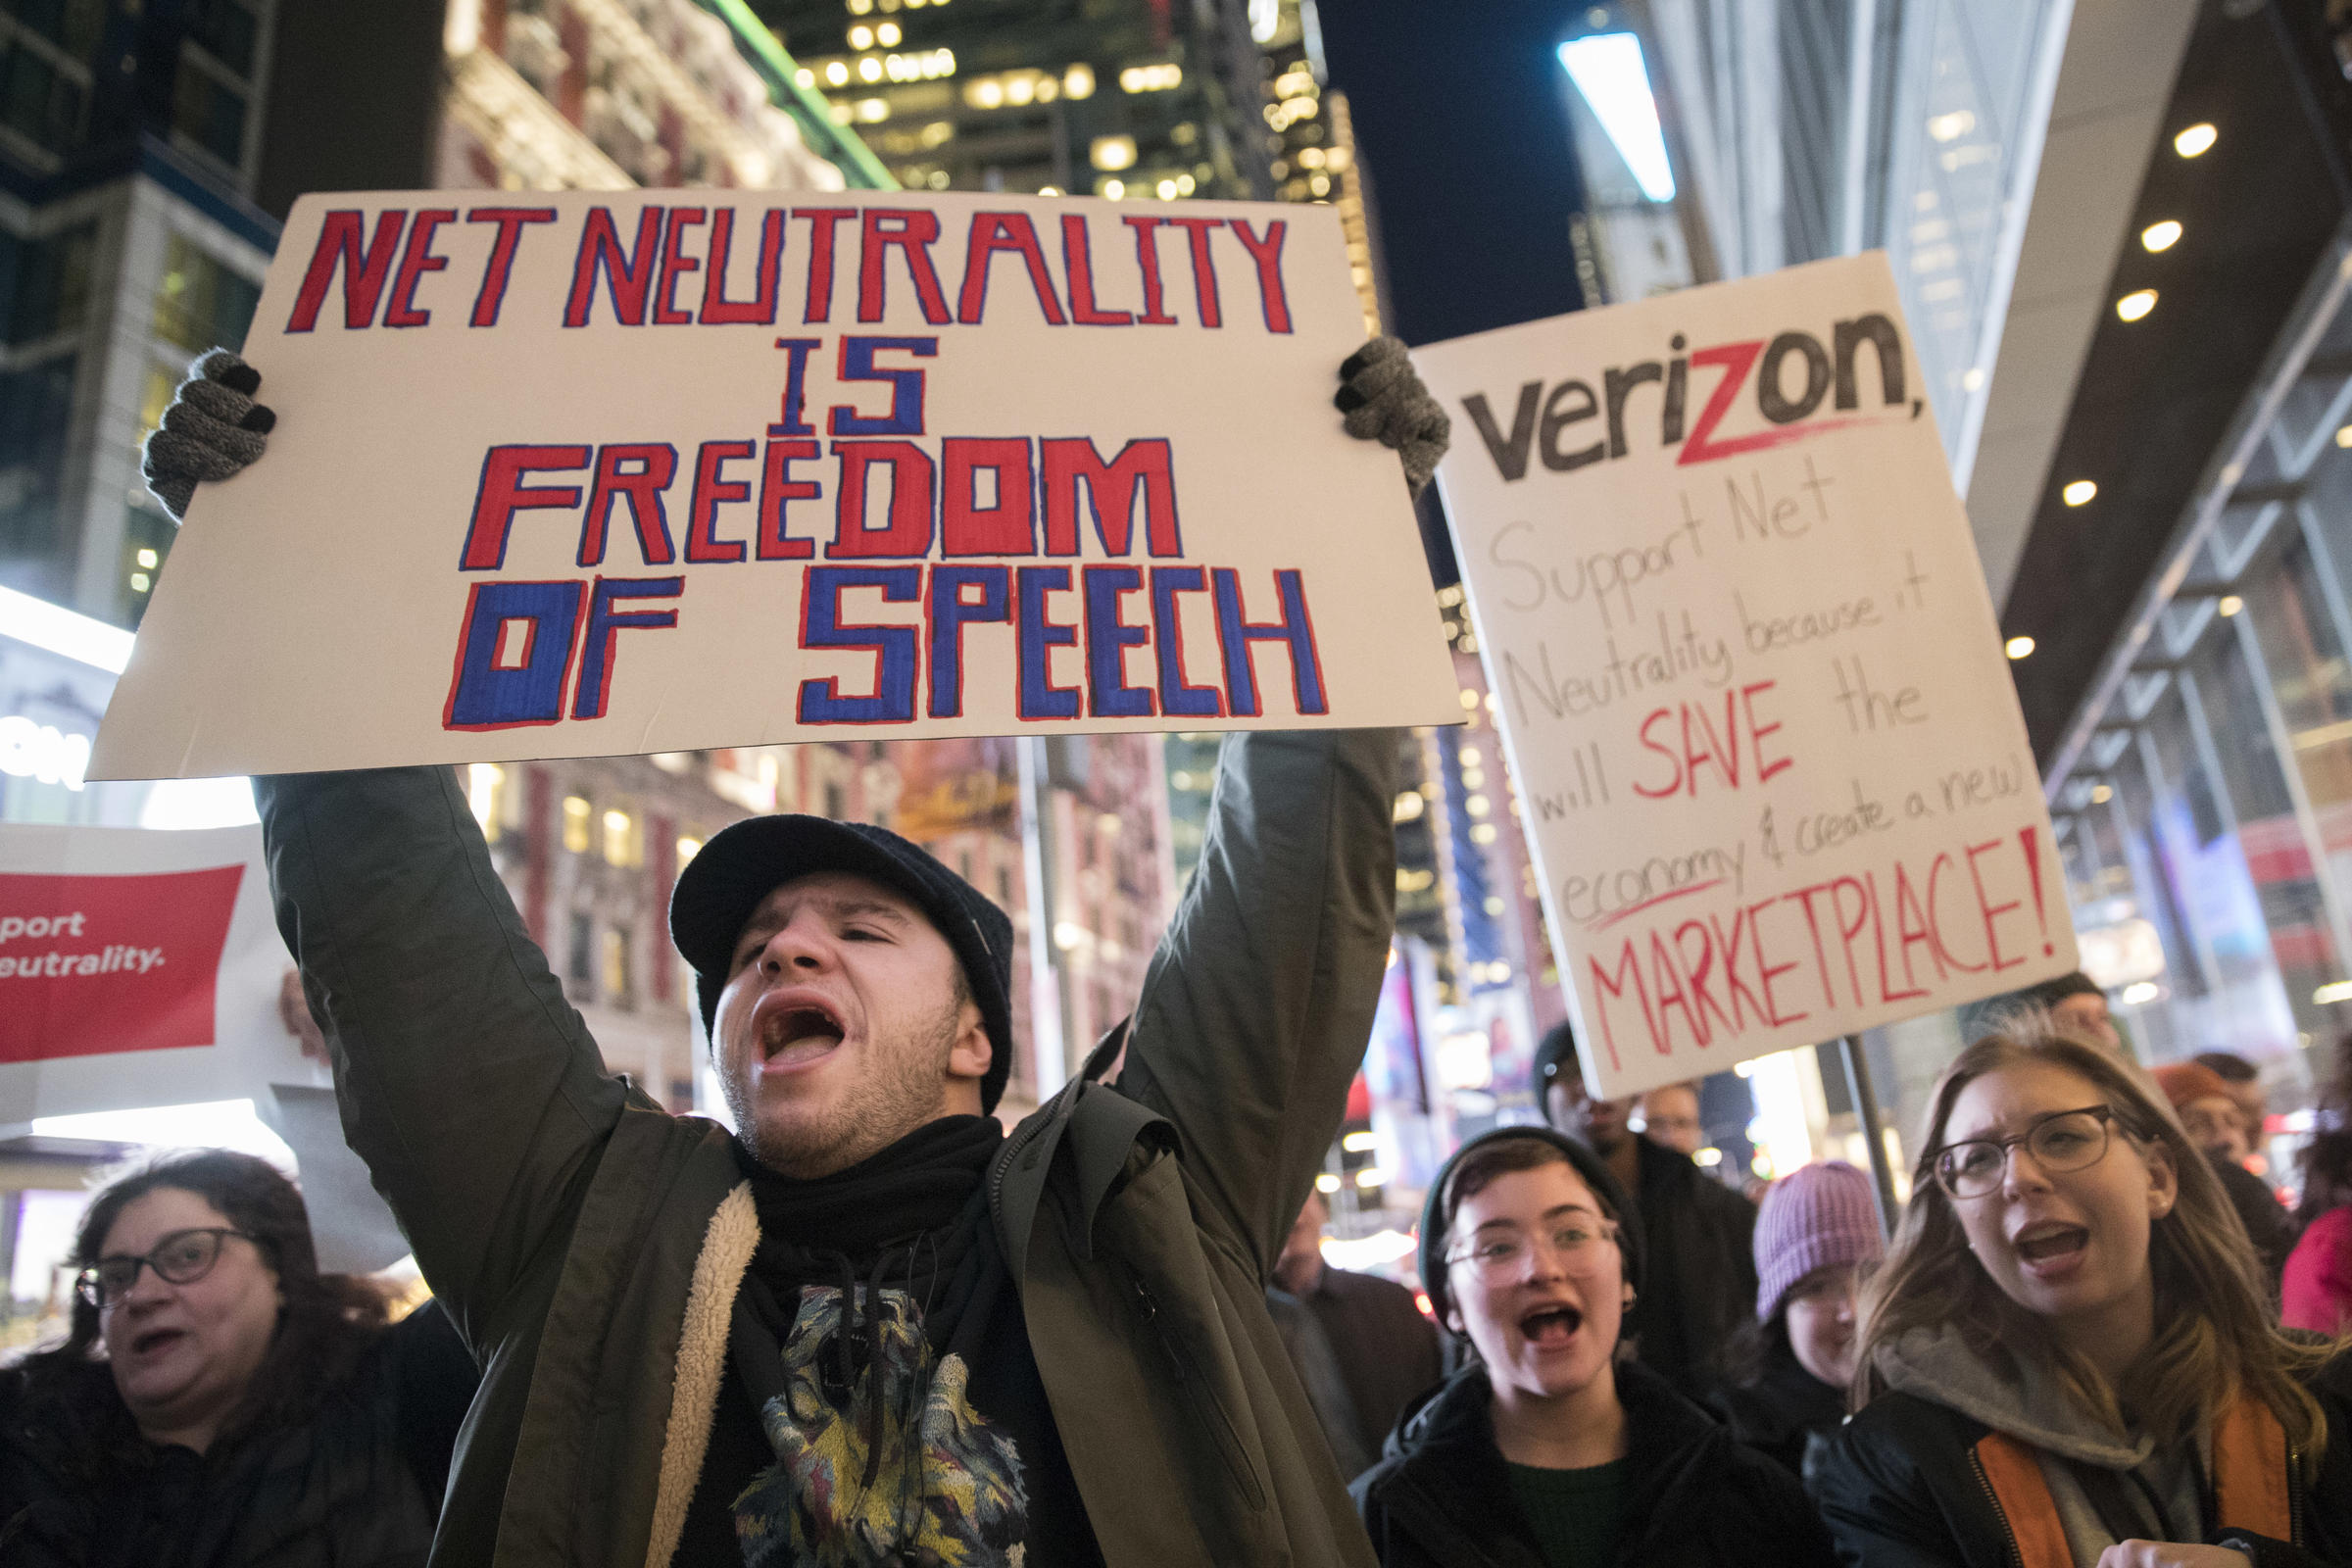 Net Neutrality is one vote away from being restored